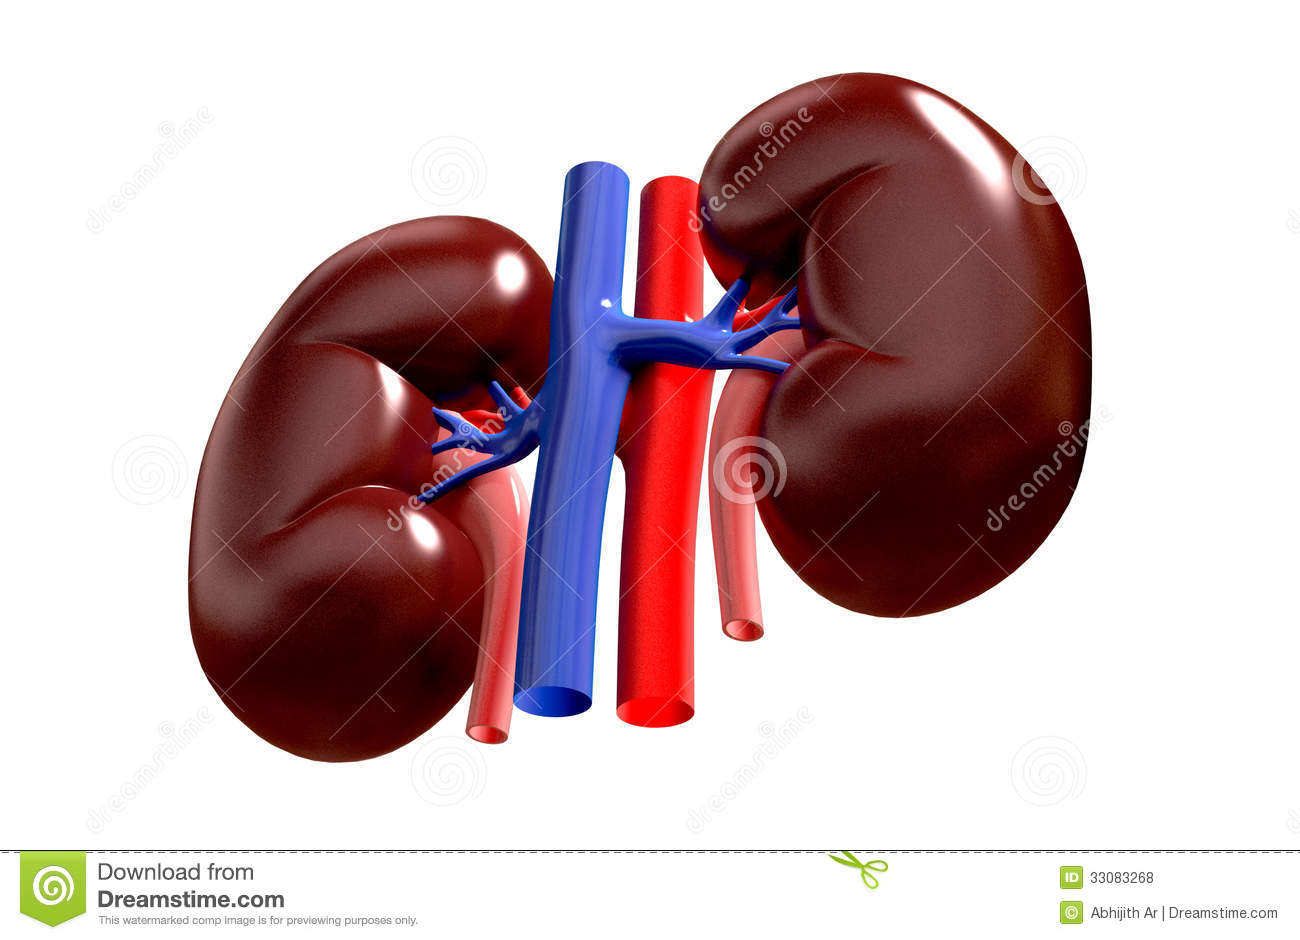 Human Kidney Stock Illustration Illustration Of Science 33083268